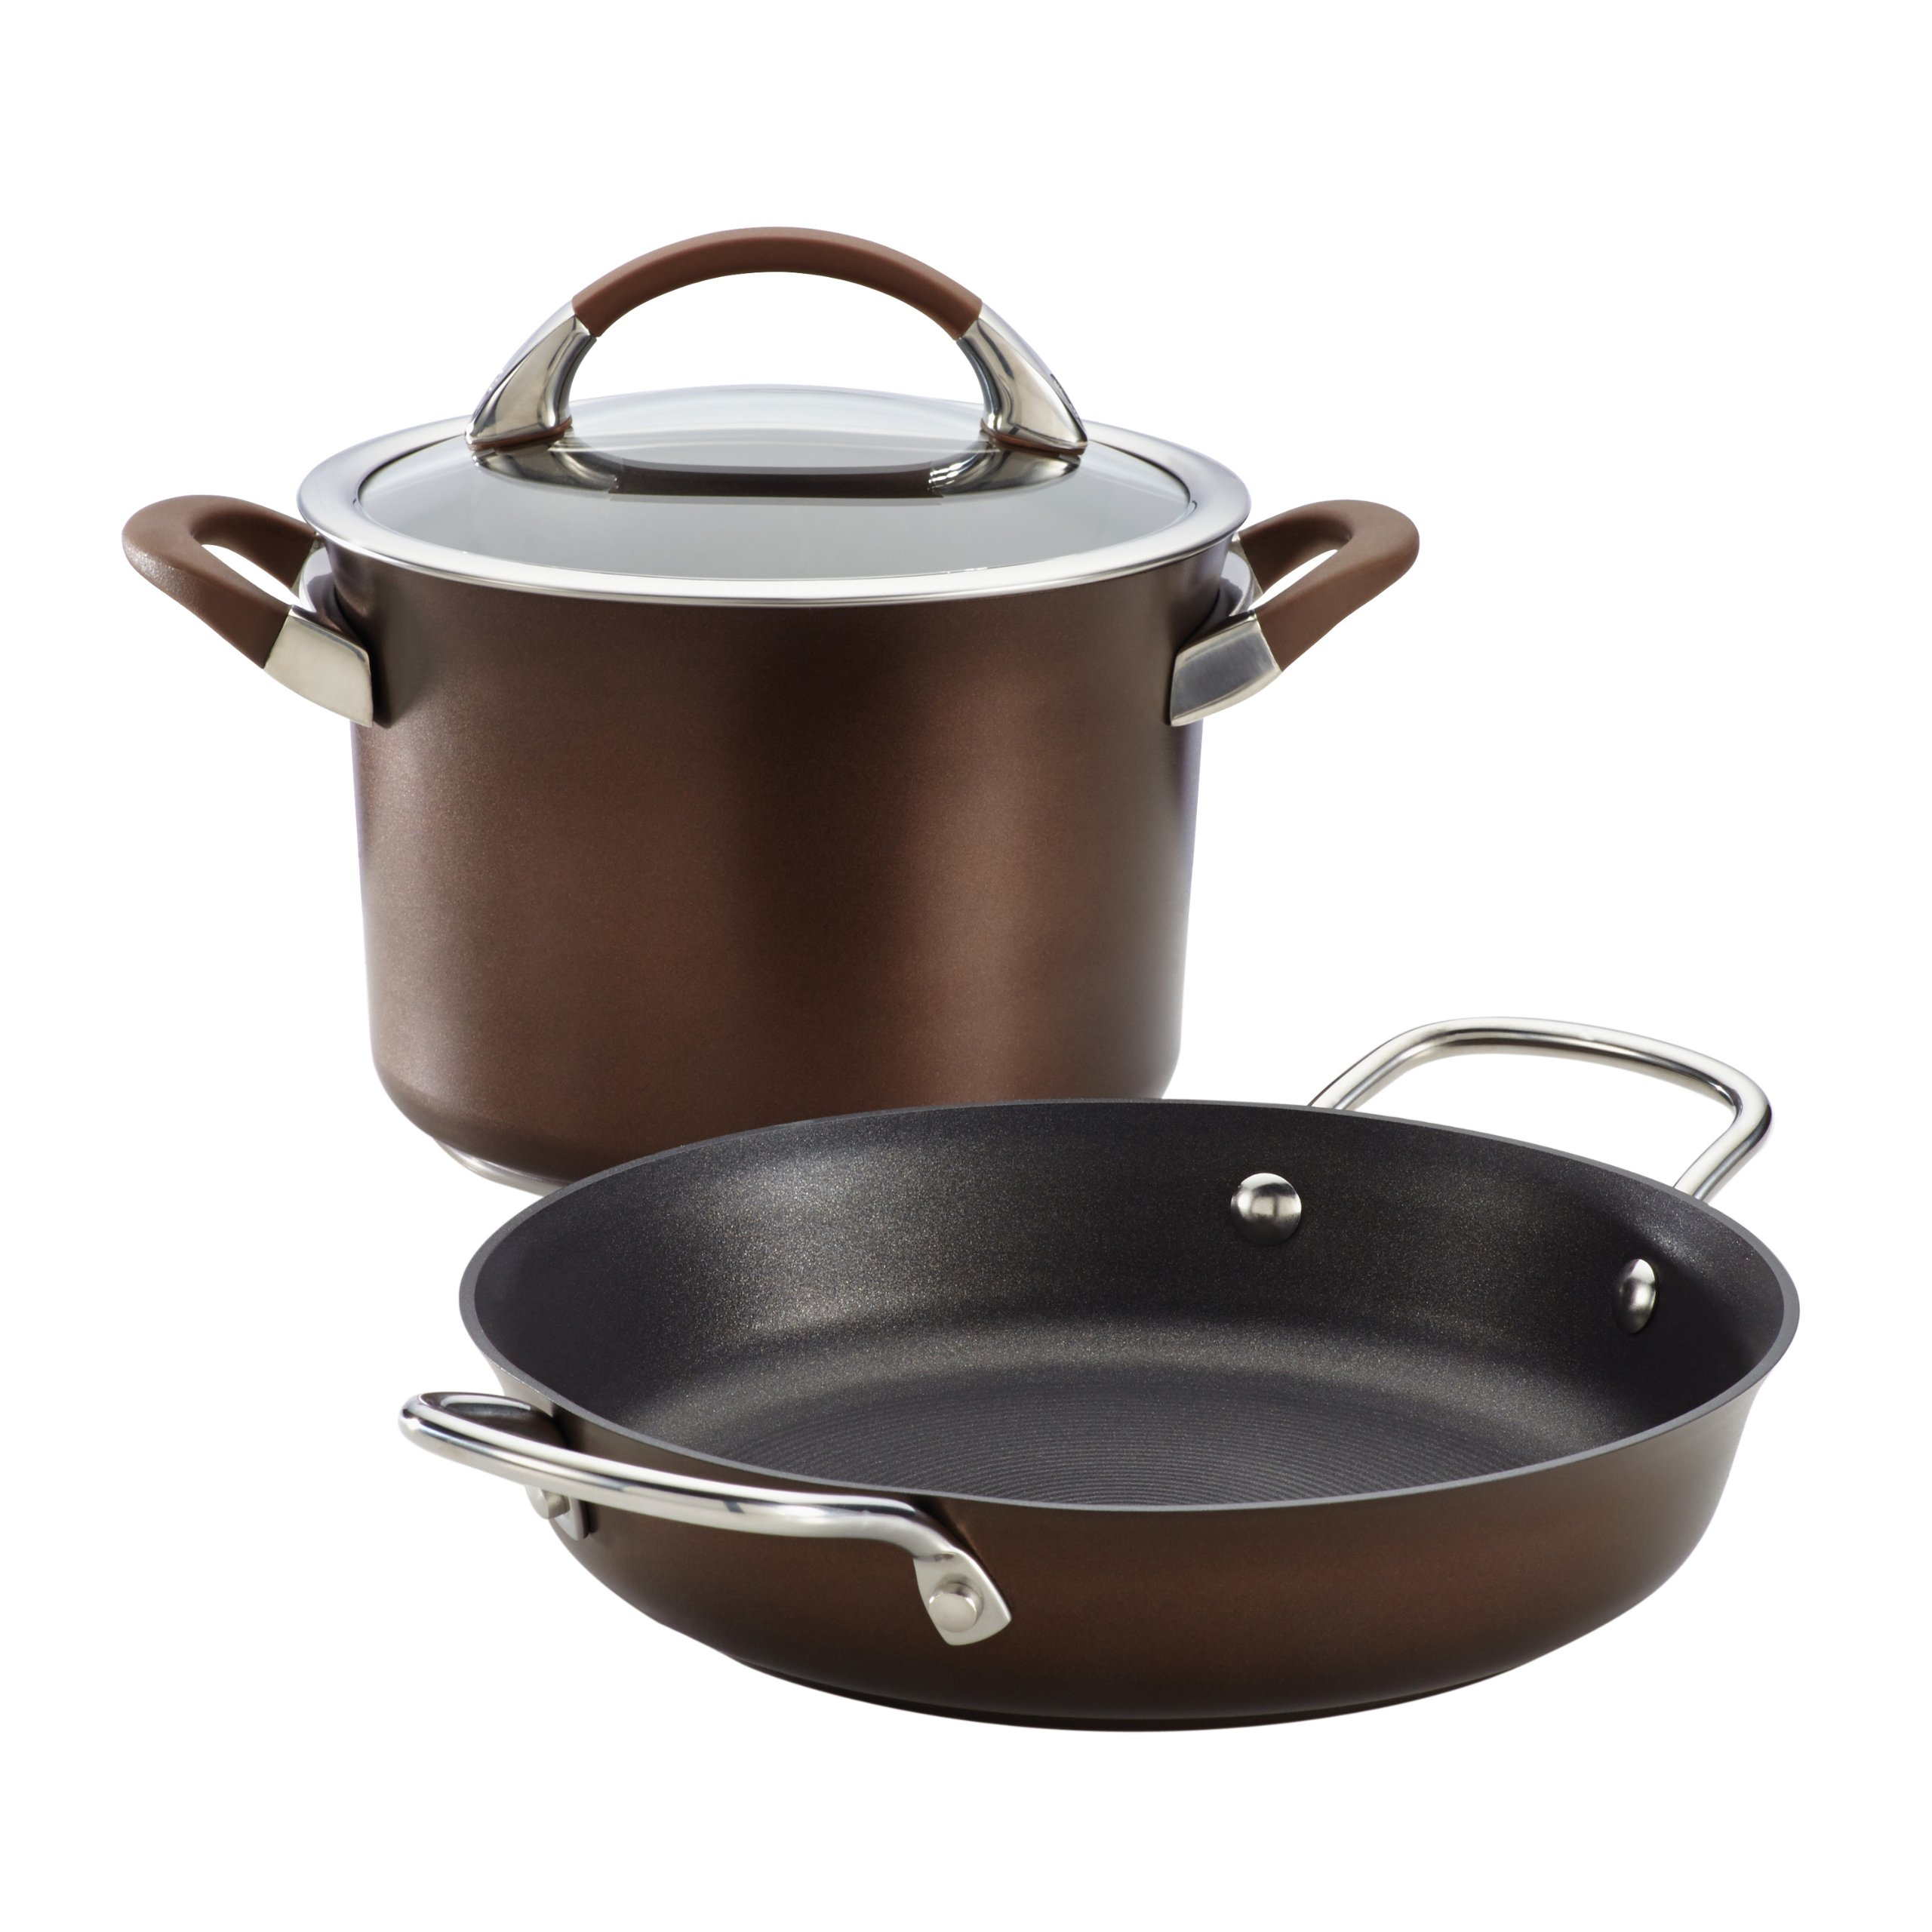 Circulon Symmetry 3 Piece Chocolate Hard Anodized Aluminum Cookware Set by Circulon